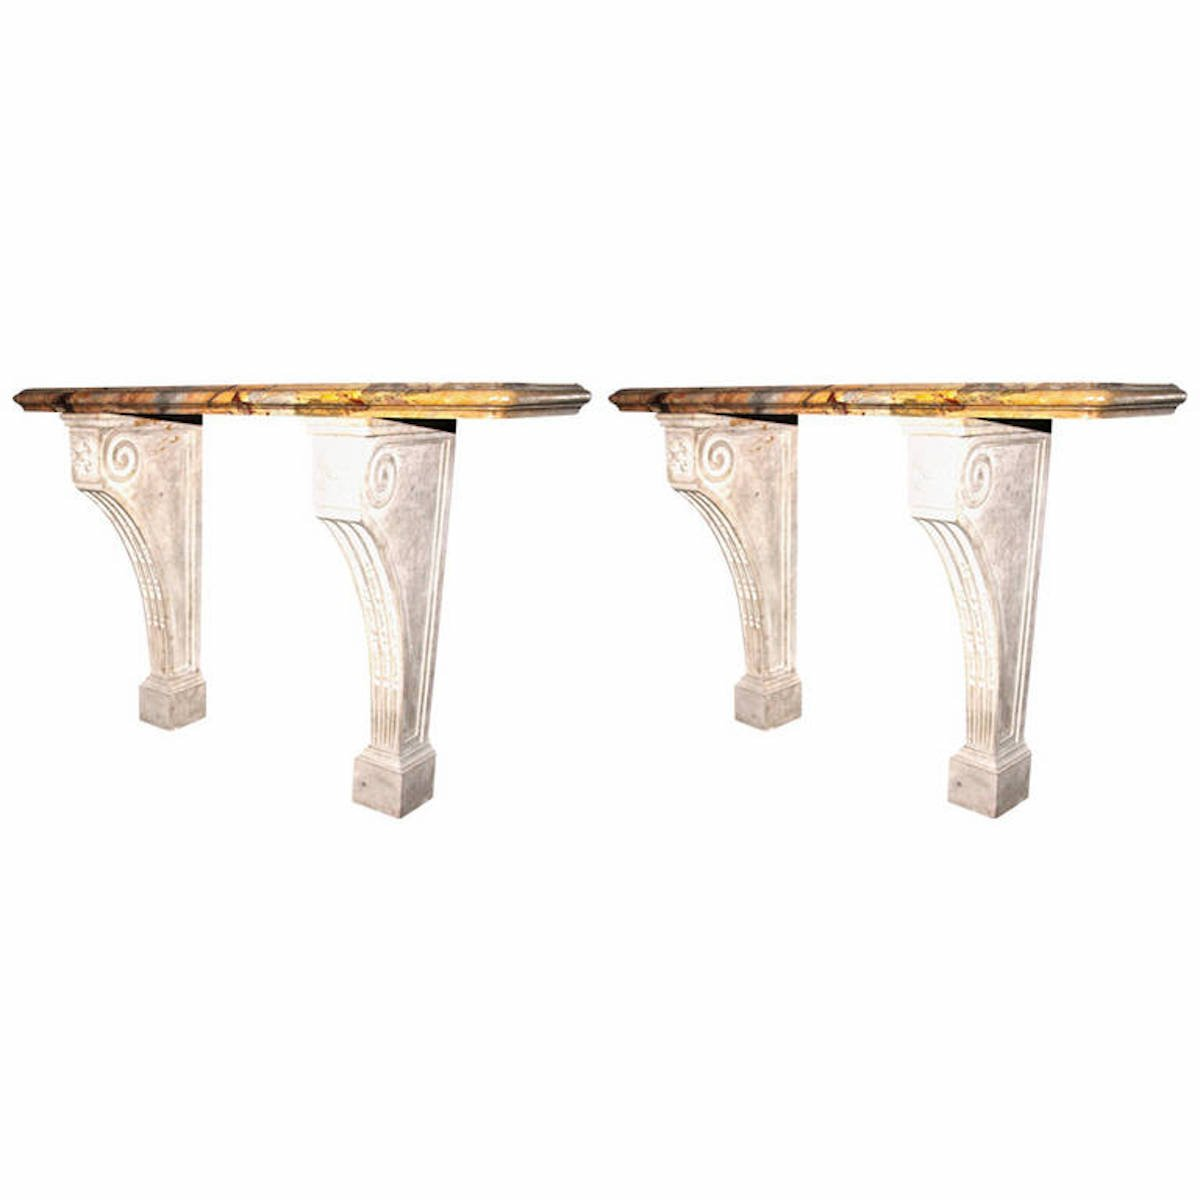 Antique sarrancolin marble console table set of 2 for sale at pamono antique sarrancolin marble console table set of 2 geotapseo Choice Image